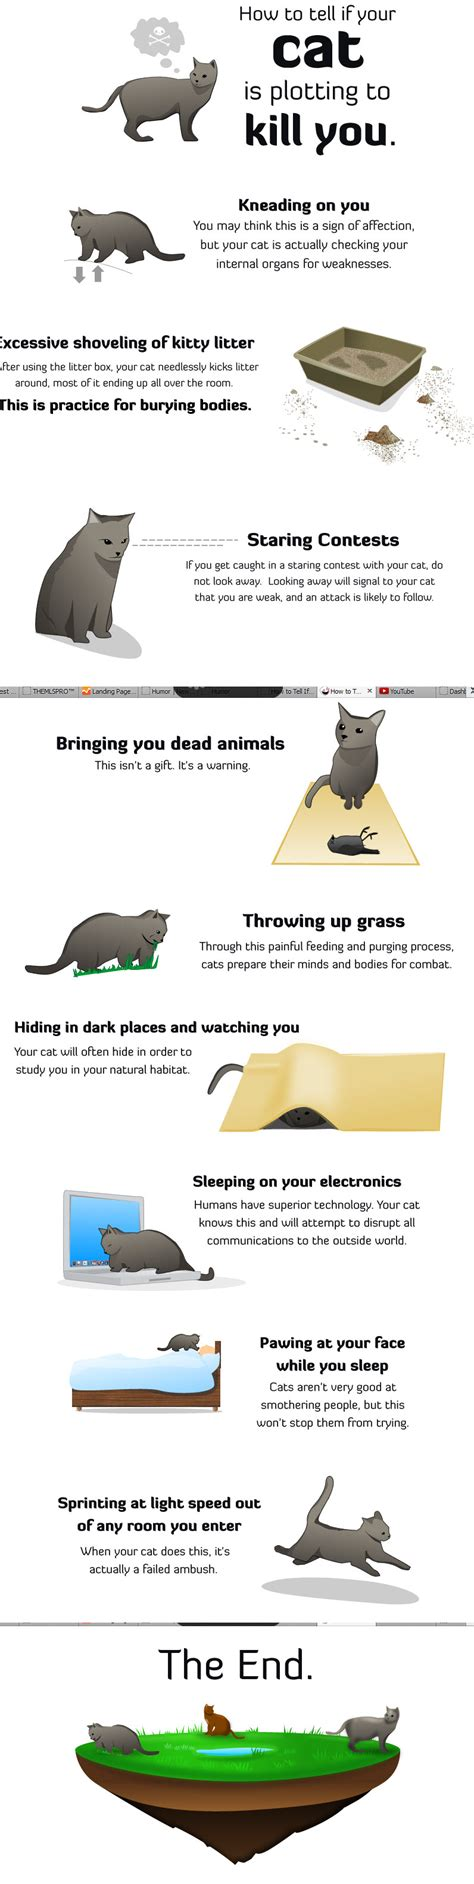 how to tell if your cat is plotting to kill you the oatmeal liveleak cat gives a comments